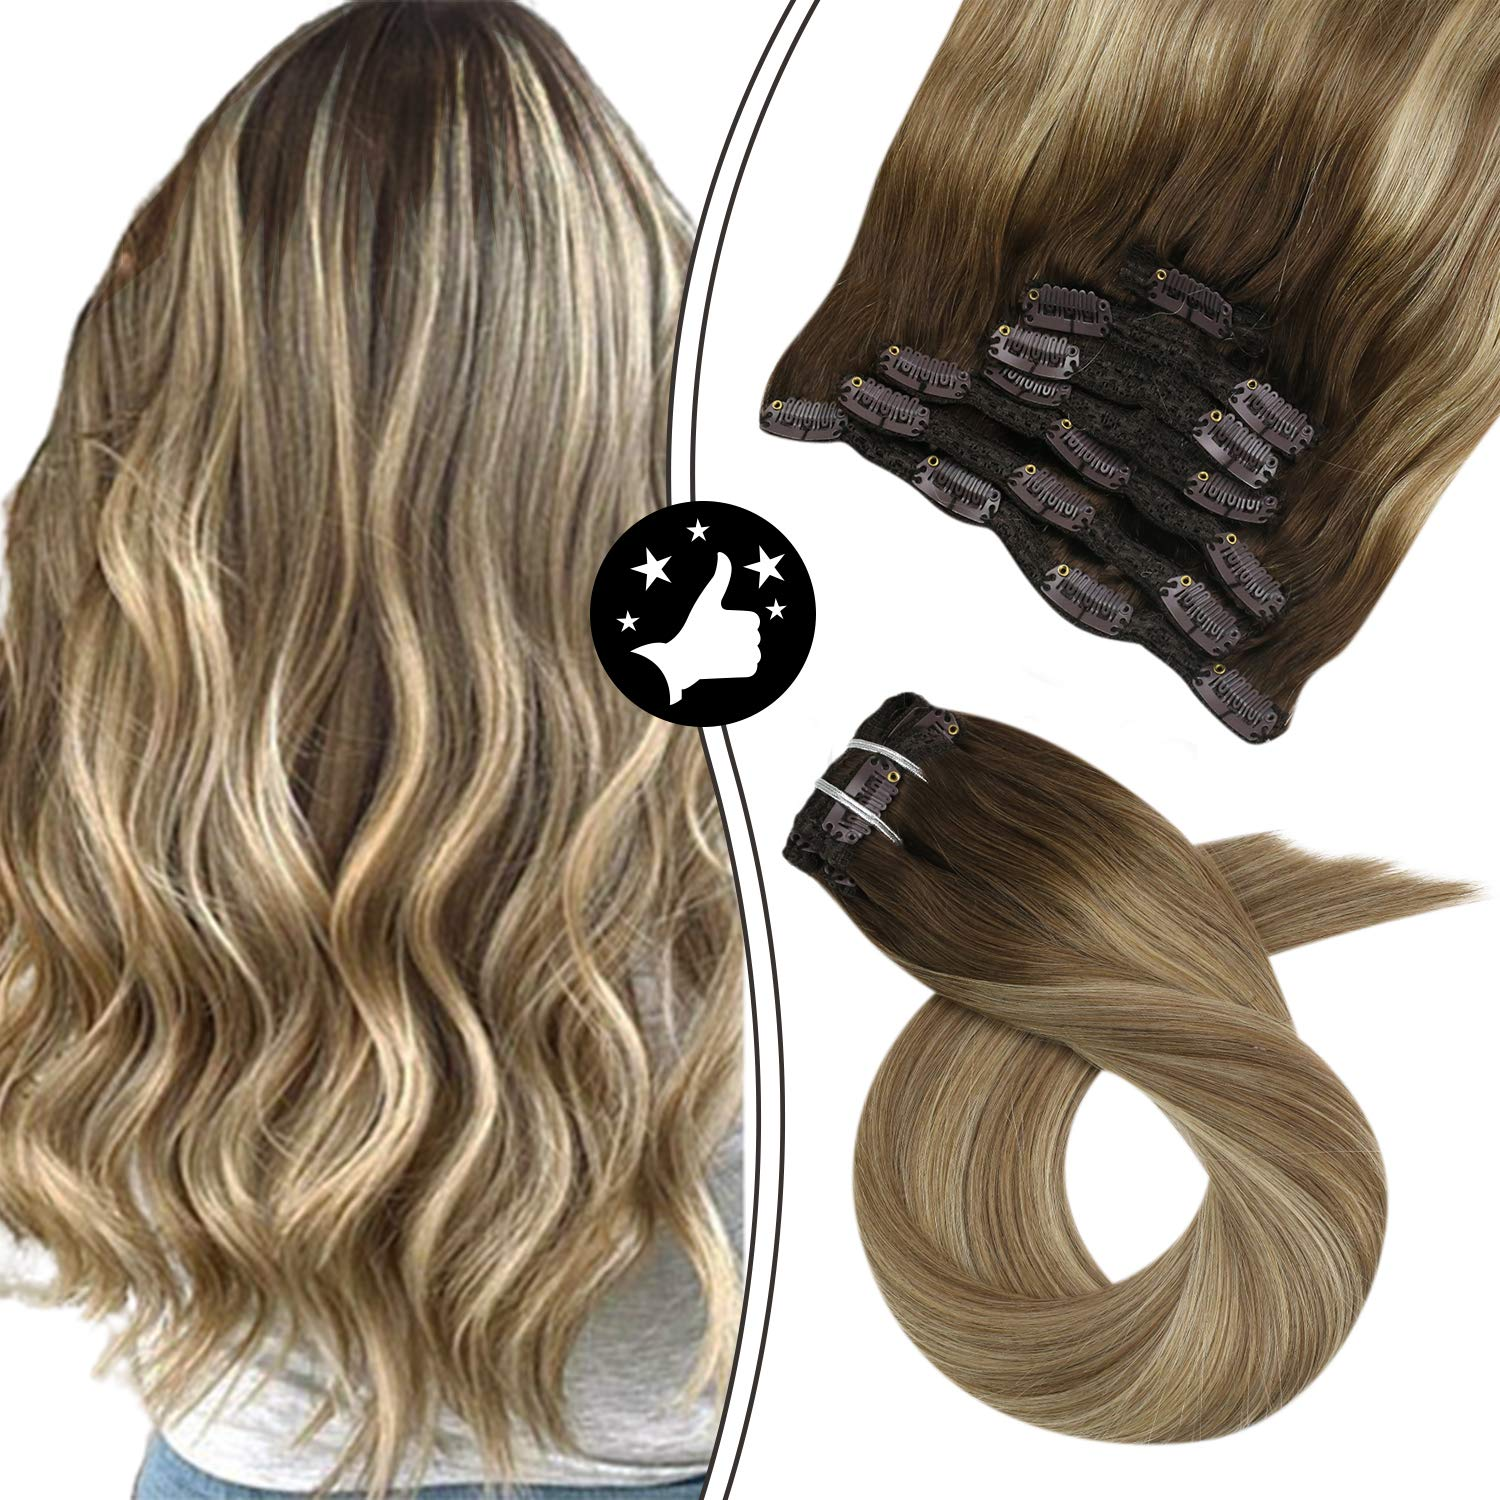 Clip in Hair Extensions 100 Real Human Hair Natural Straight Double Weft Full Head Machine Made Remy Brazilian Extensions